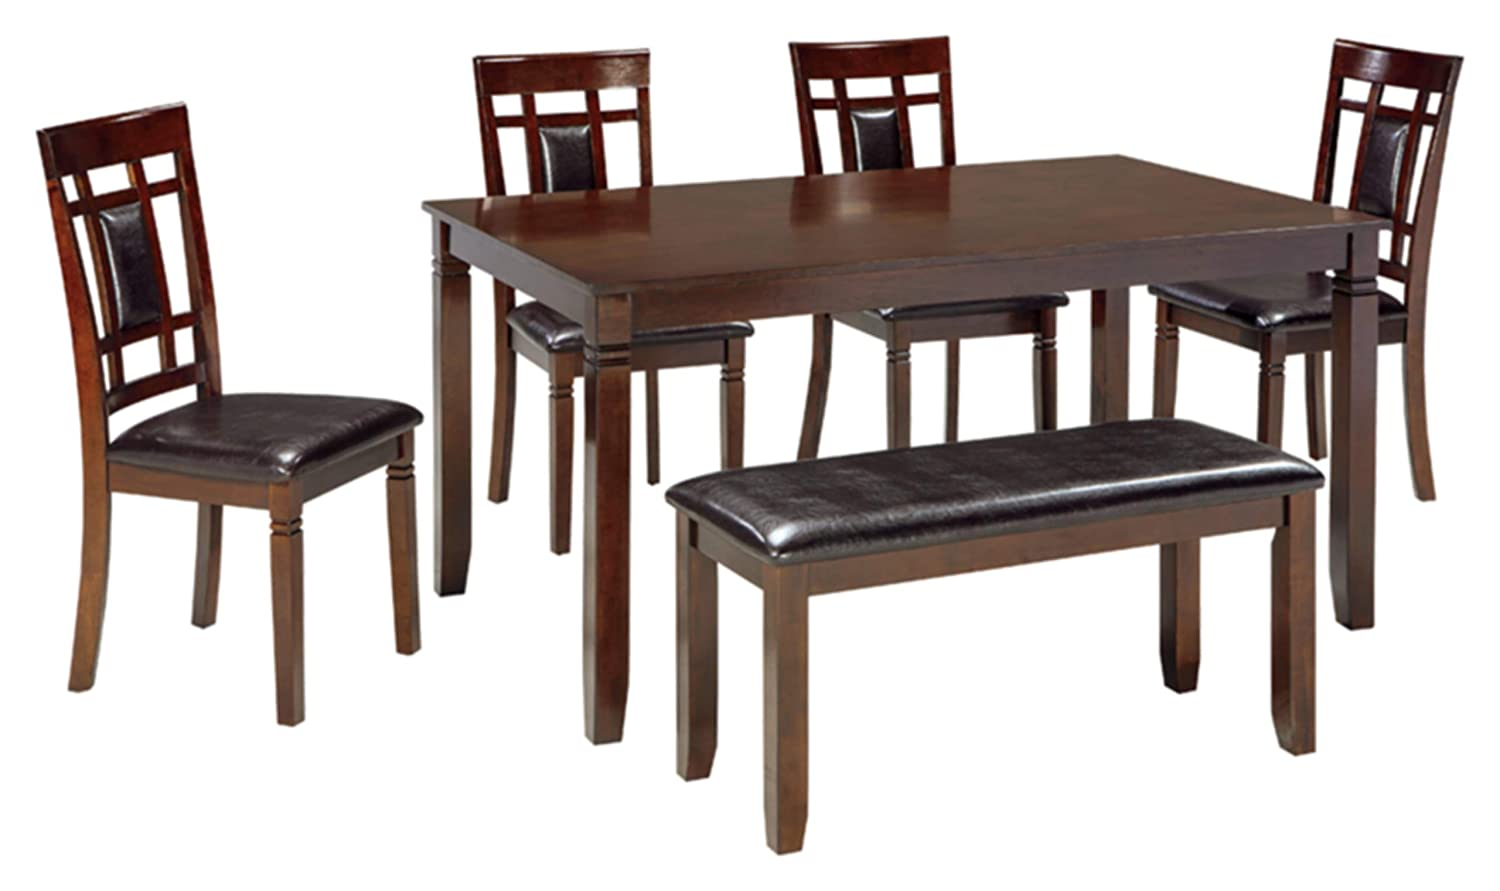 Signature Design - Bennox Dining Room Table and Chairs with Bench (Set of 6) - Brown